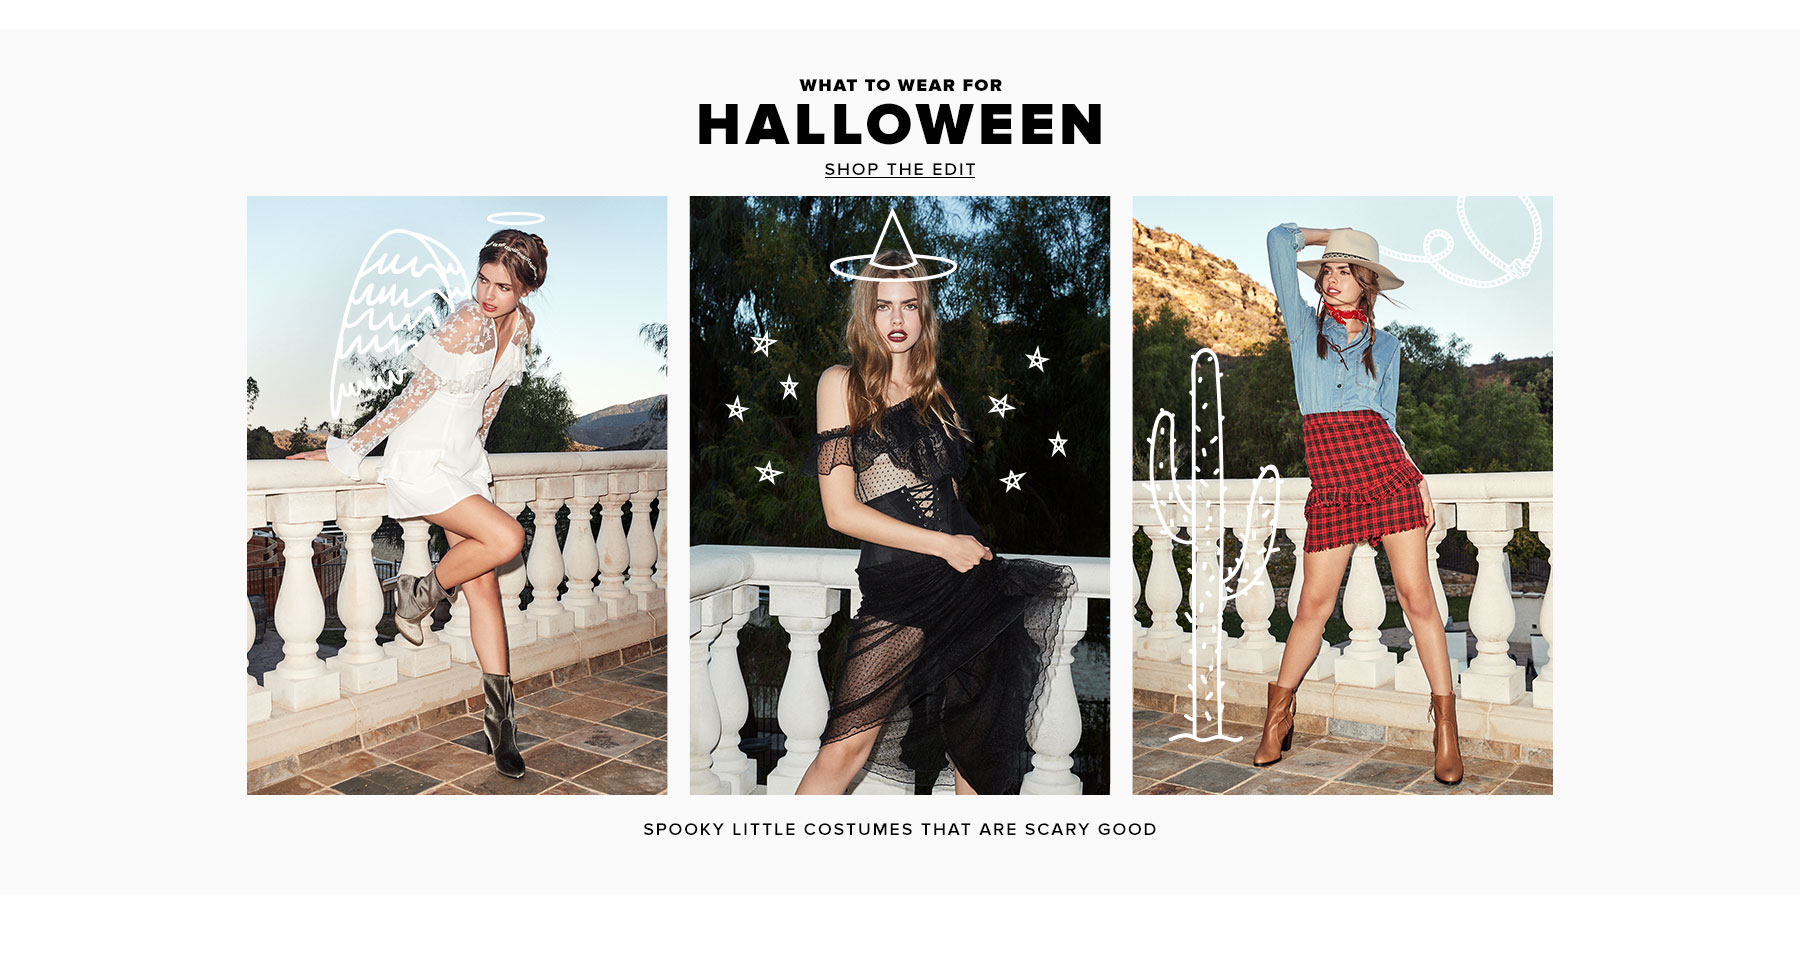 What to Wear for Halloween. Spooky little costumes that are scary good. Shop the Edit.